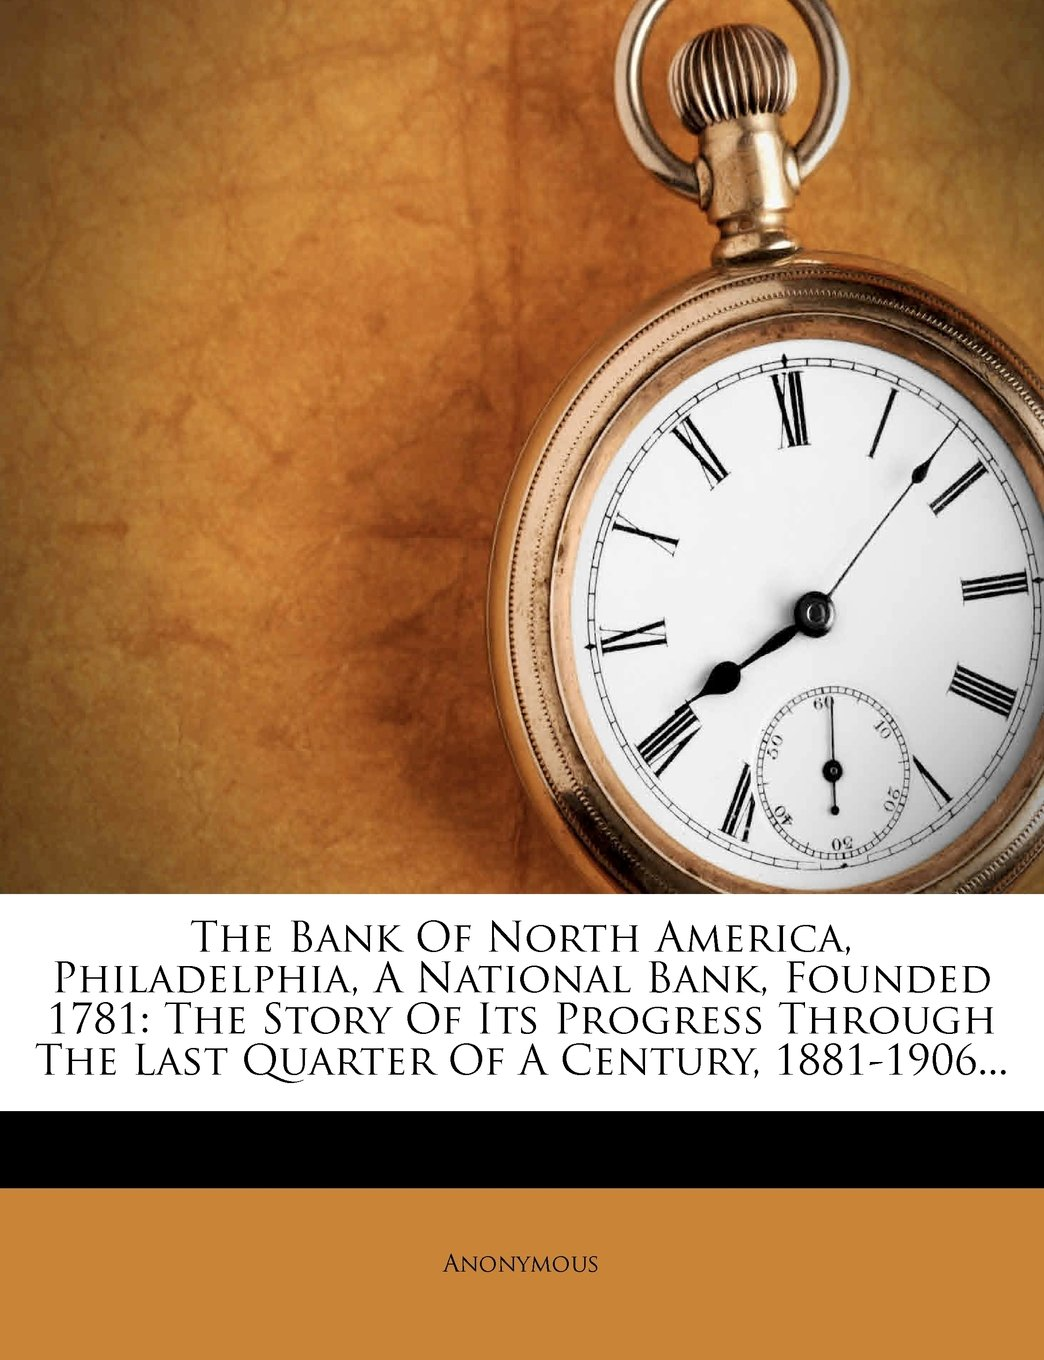 Download The Bank Of North America, Philadelphia, A National Bank, Founded 1781: The Story Of Its Progress Through The Last Quarter Of A Century, 1881-1906... pdf epub